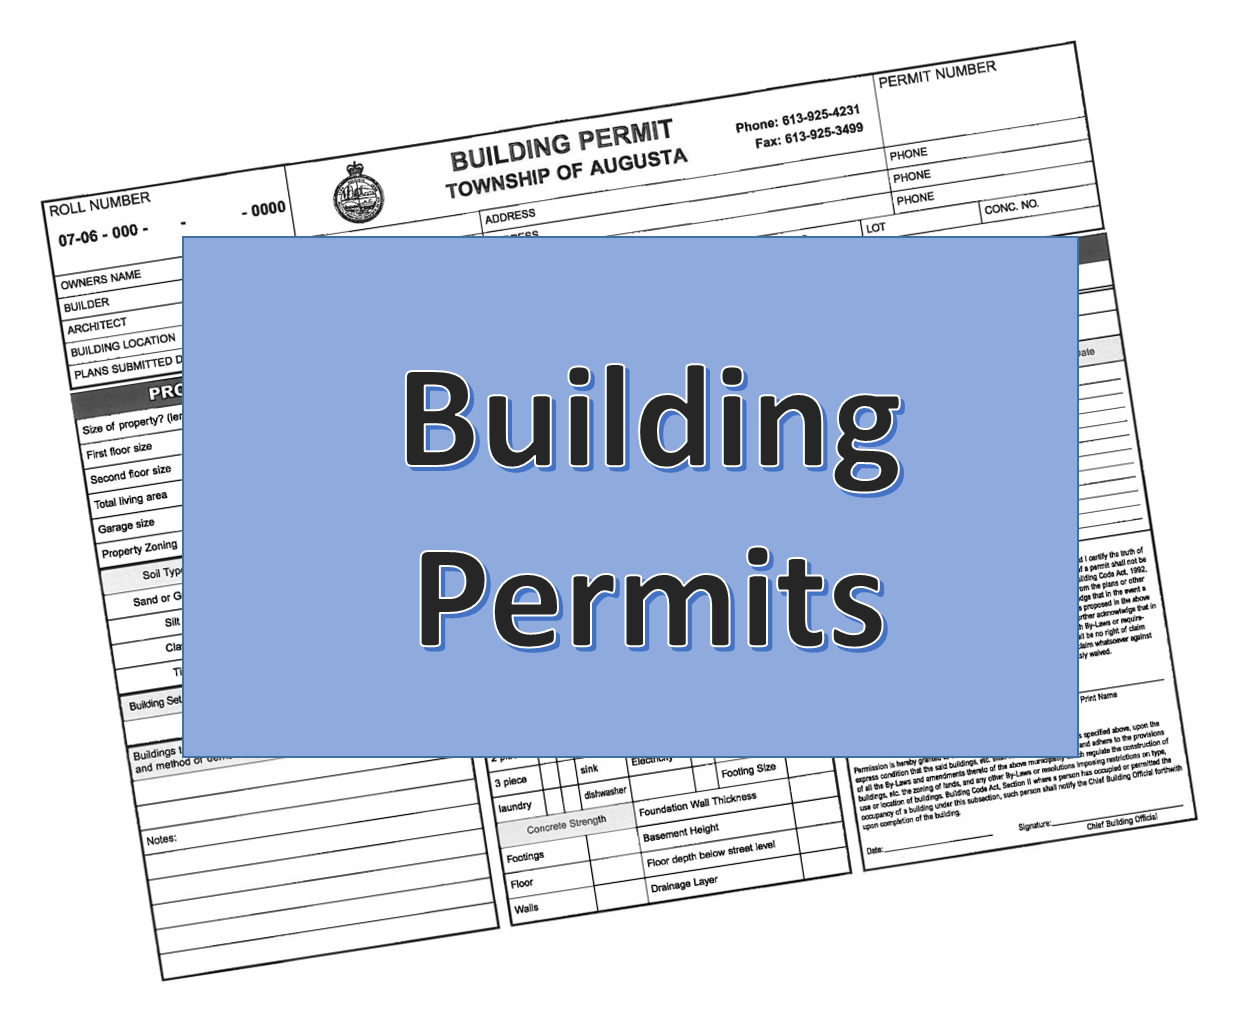 photo of a building permit form with a sign in front that says building permits